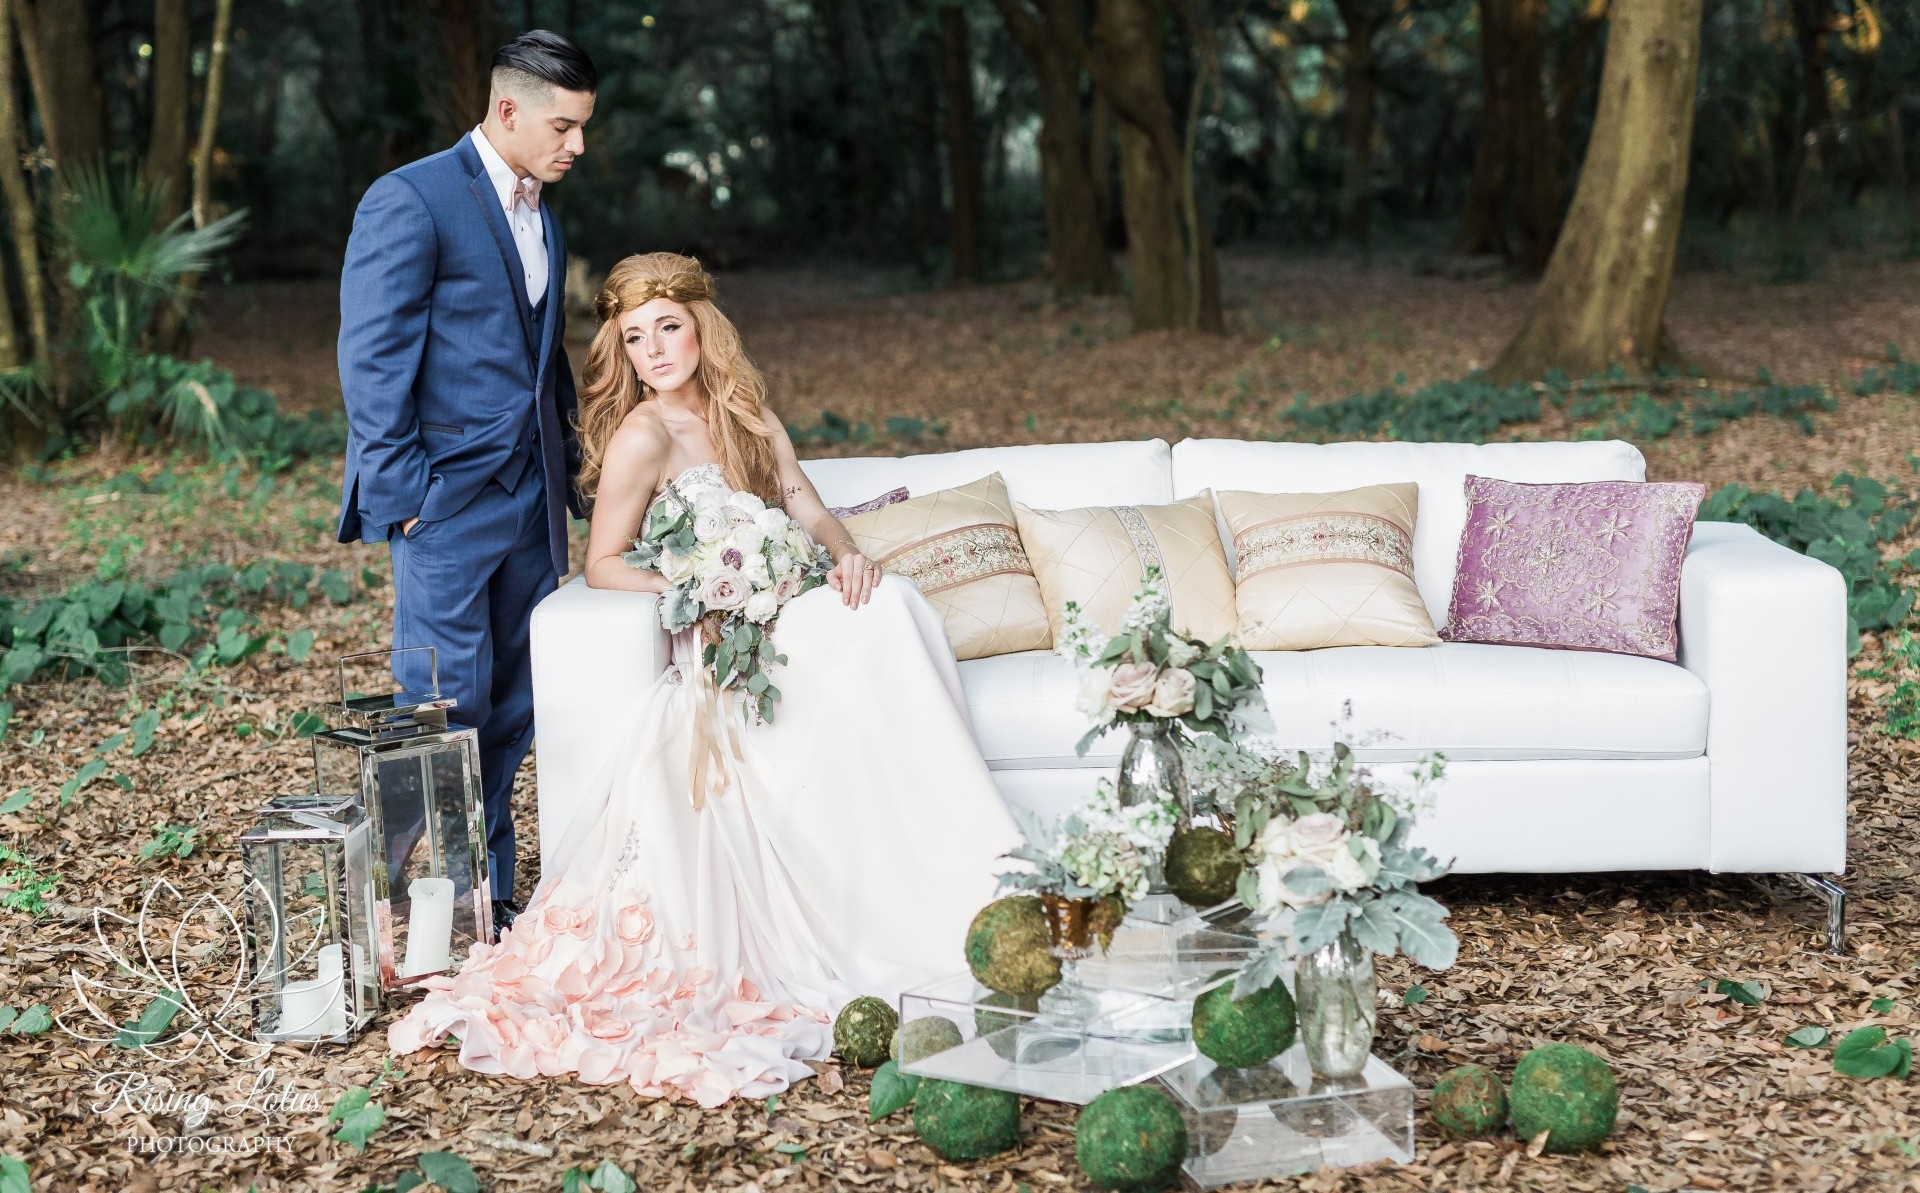 Tampa Bay\'s Choice for Weddings, Events and Formalwear Attire